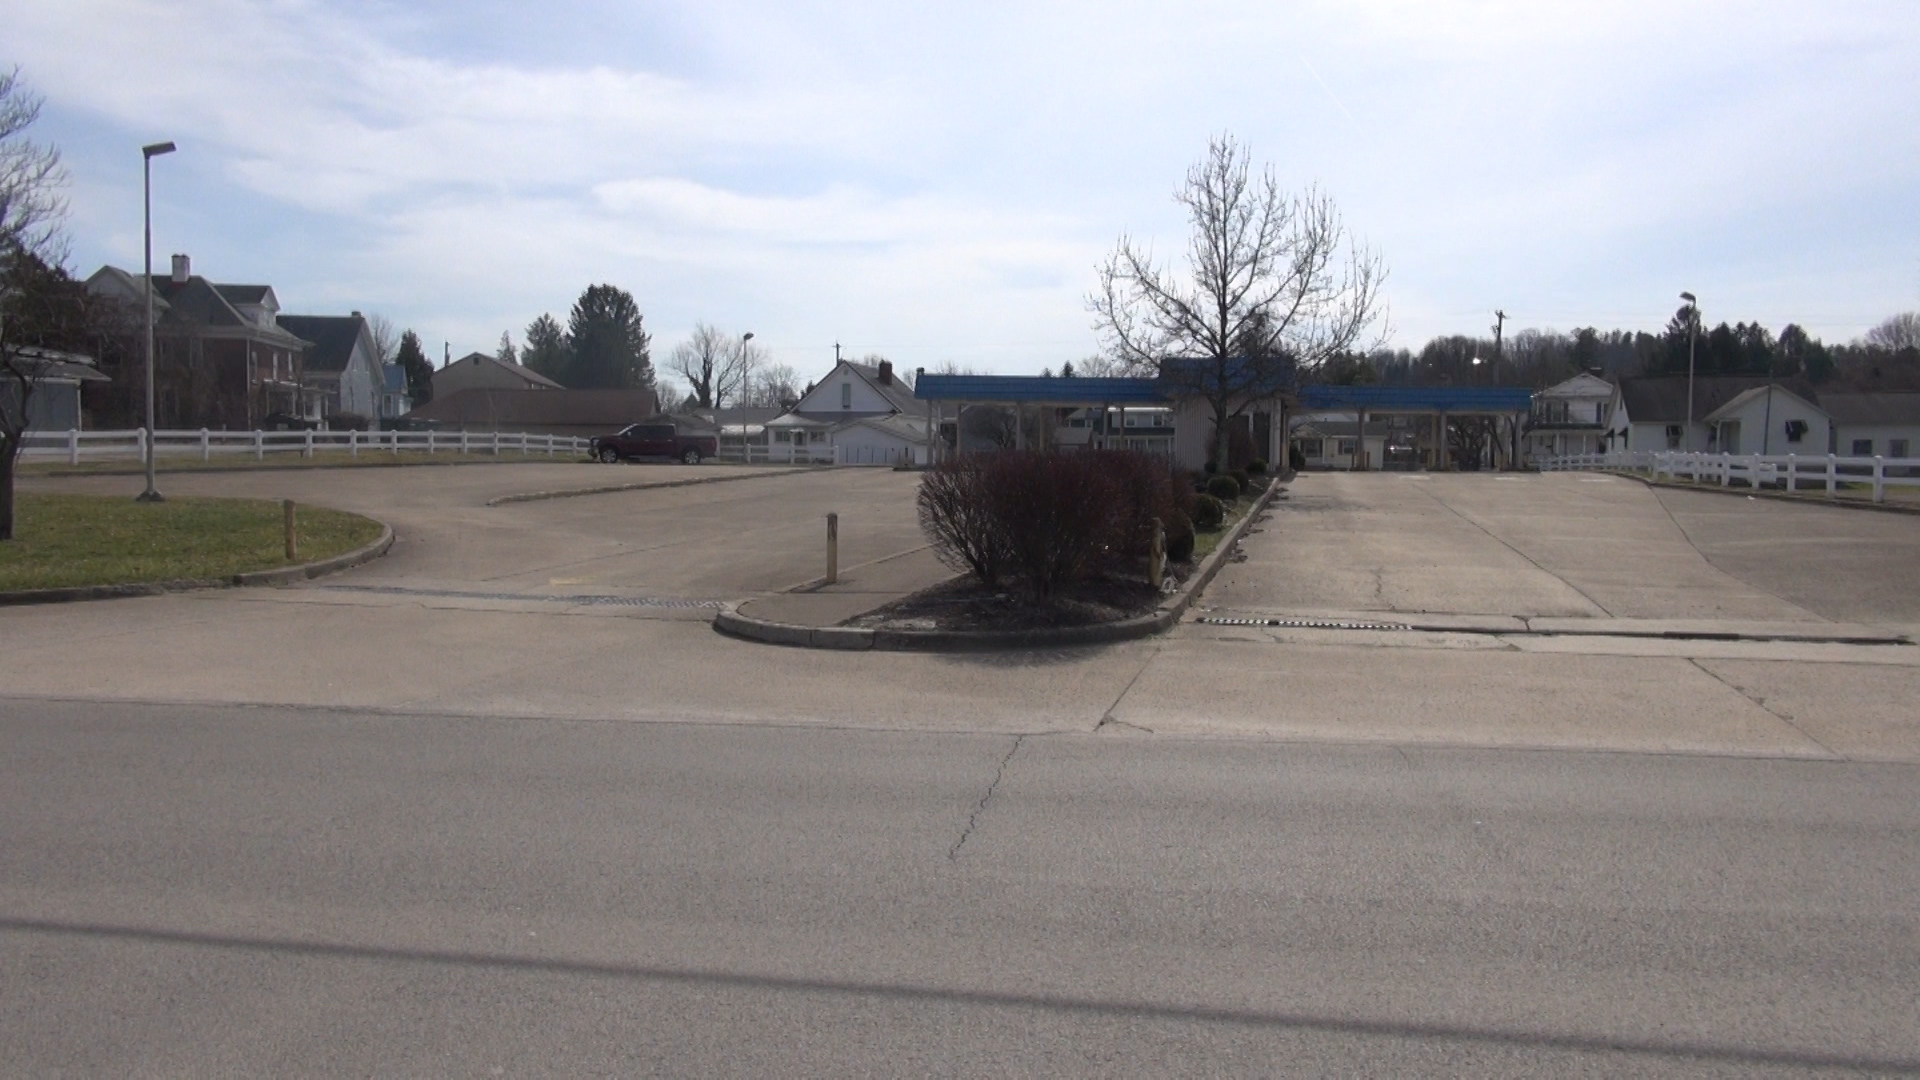 City Of Buckhannon To Purchase Bank Drive Thru To Expand Park